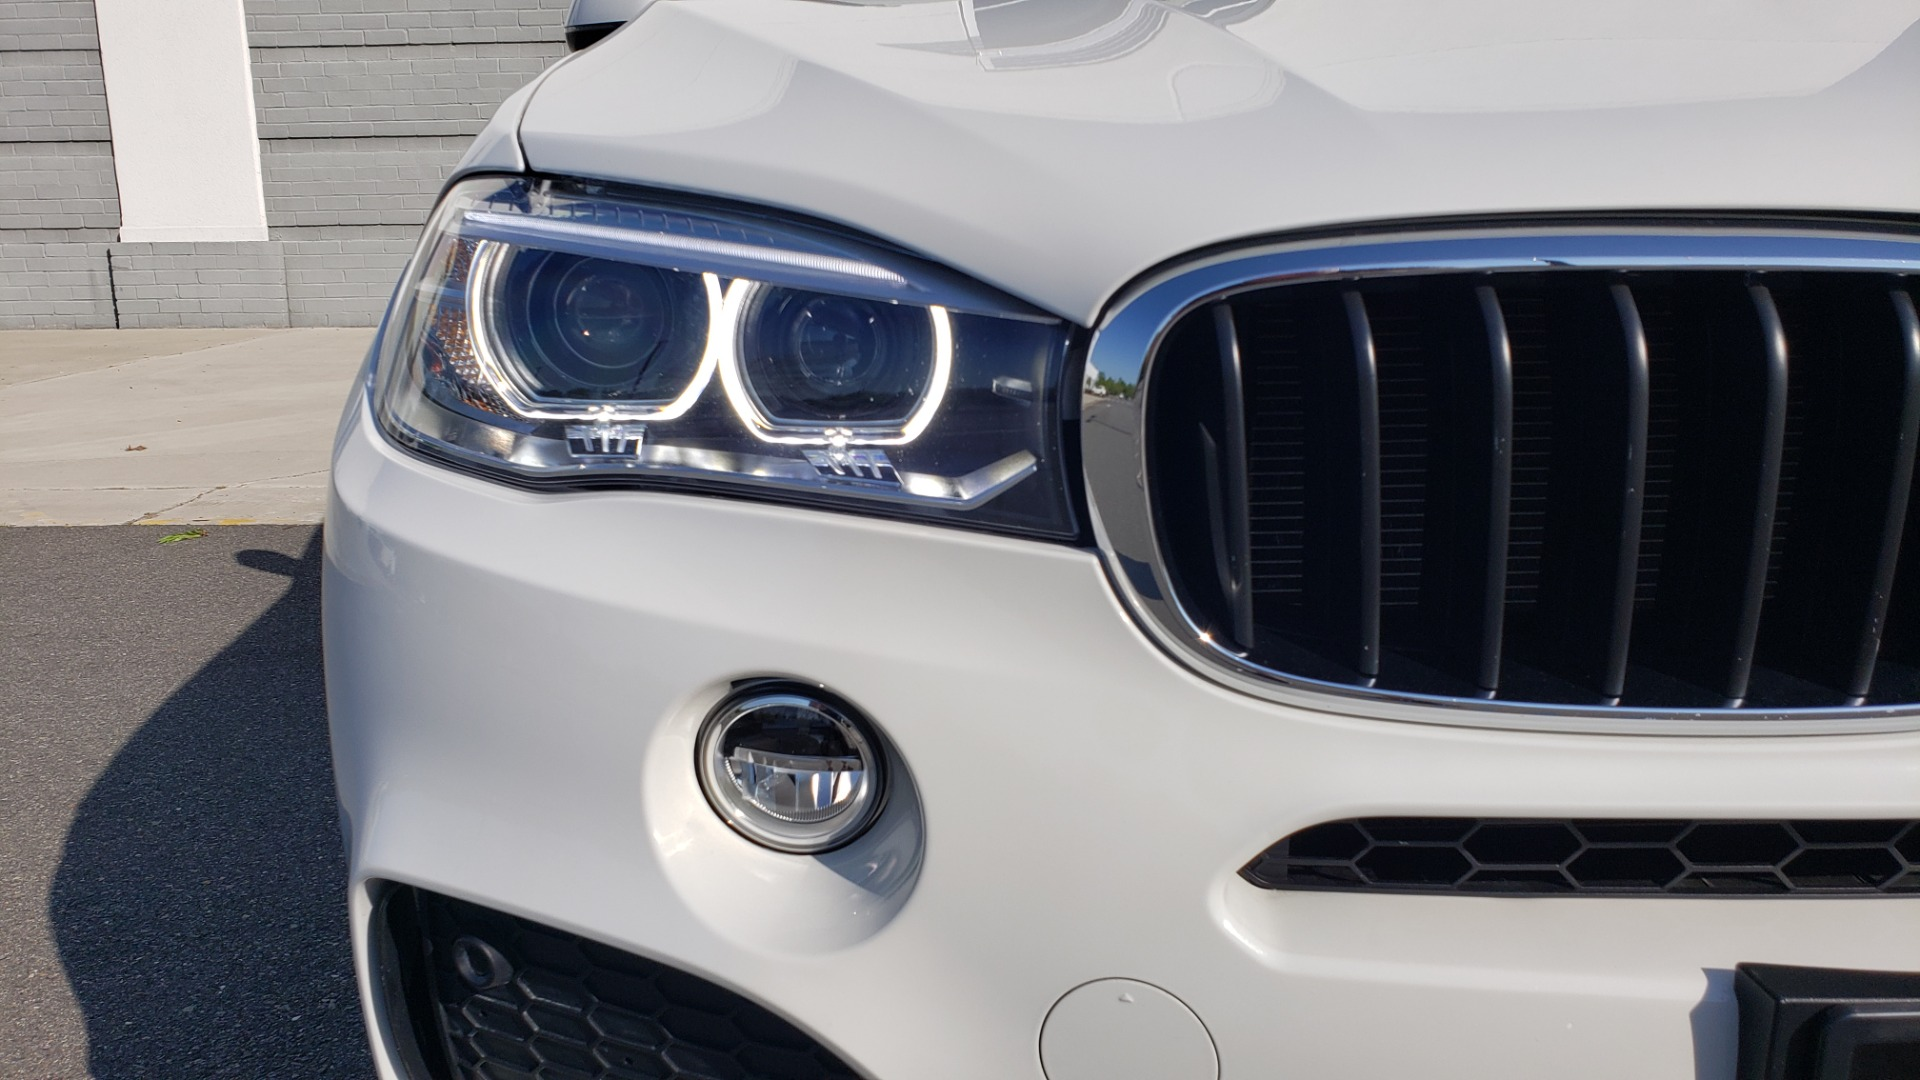 Used 2018 BMW X5 XDRIVE35I / M-SPORT / NAV / SUNROOF / H/K SND / REARVIEW for sale Sold at Formula Imports in Charlotte NC 28227 20